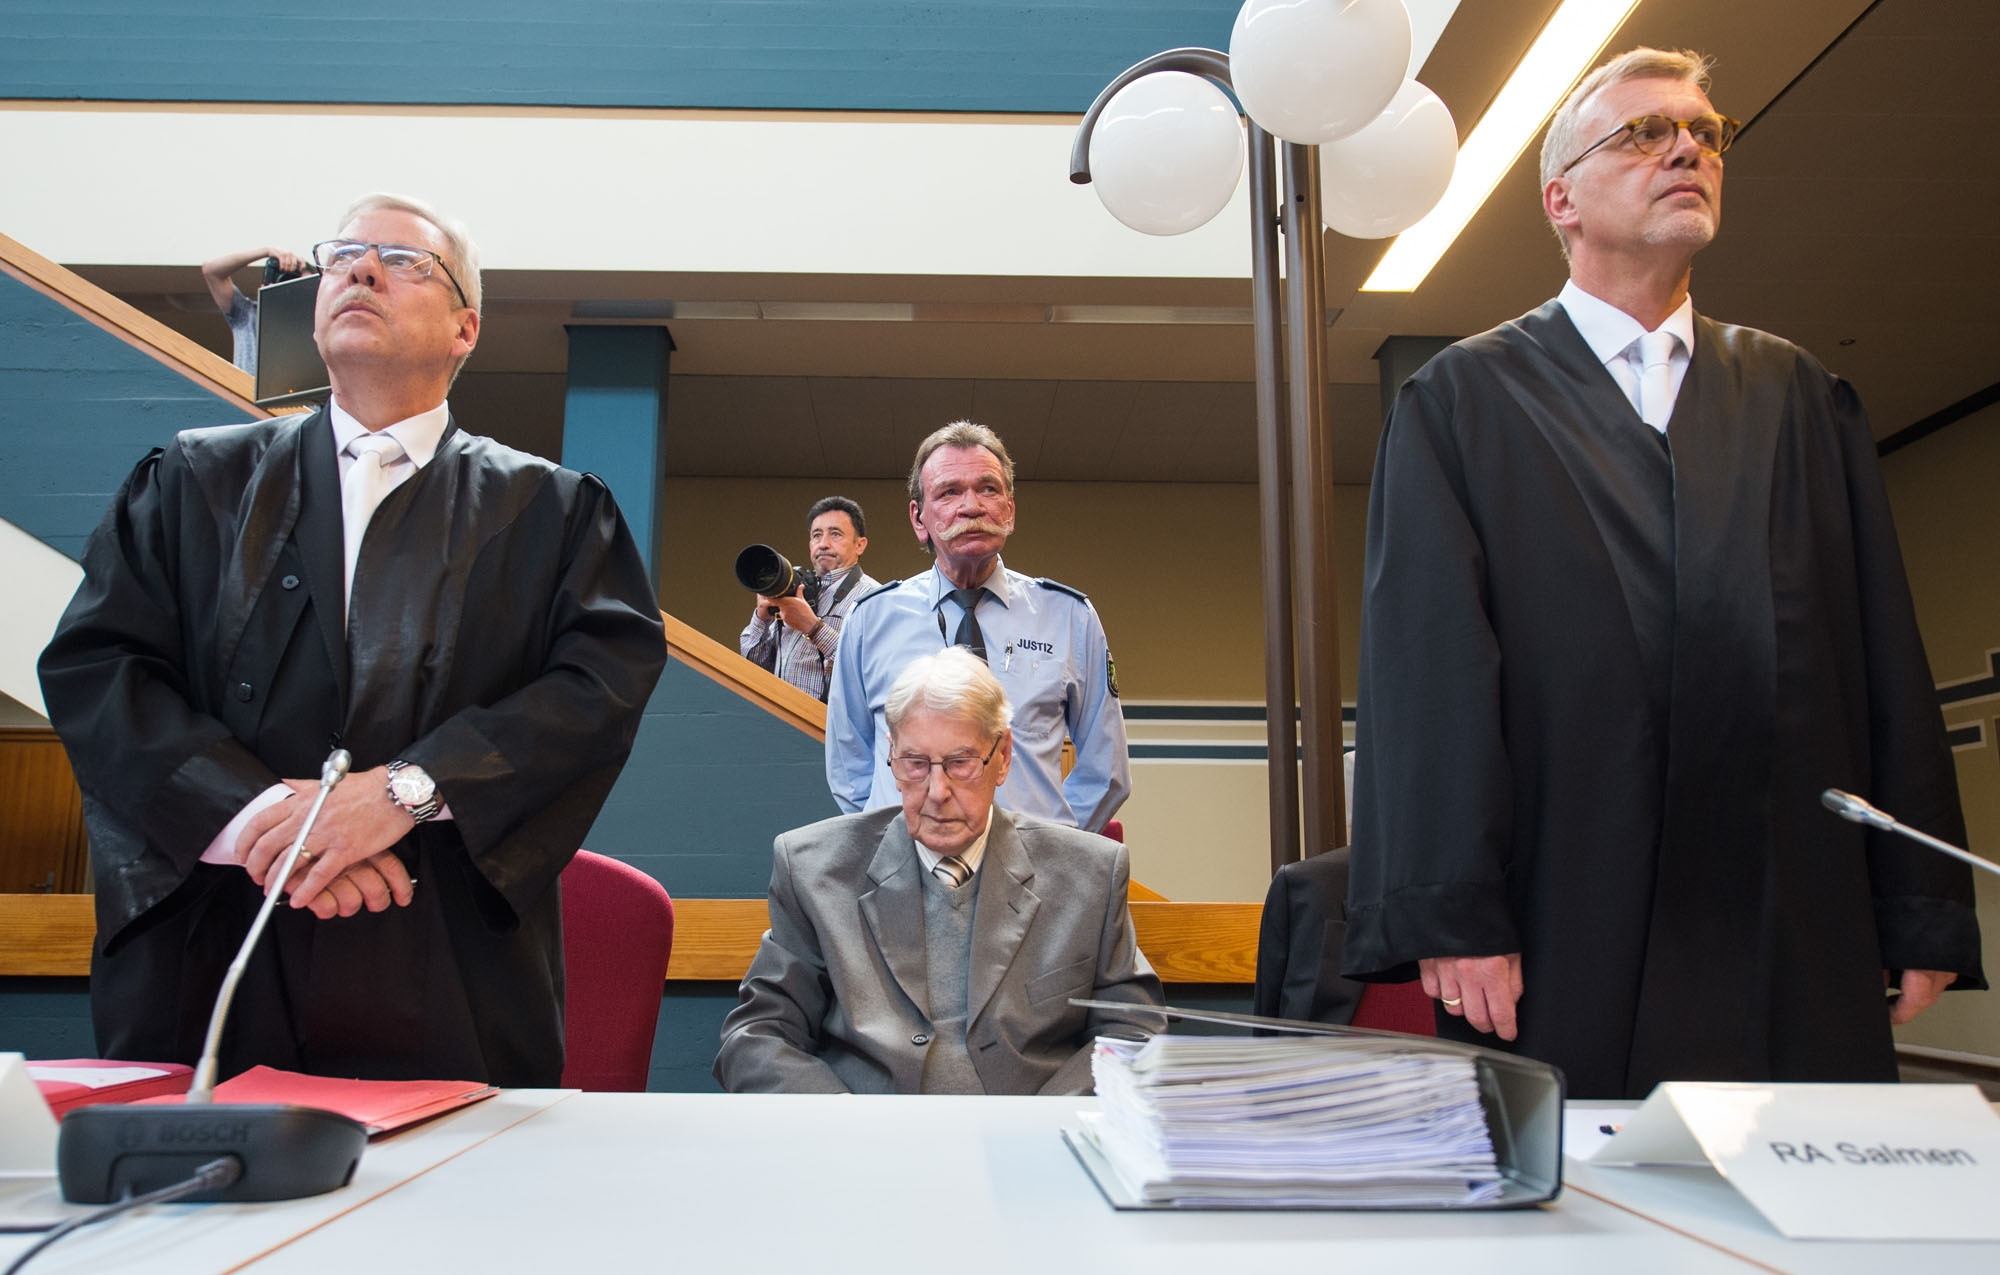 Former SS officer Reinhold Hanning (C) sits next to his lawyers Andreas Scharmer (L) and Johannes Salmen (R) at a court in Detmold, western Germany, on June 17, 2016, during the last day of his trial